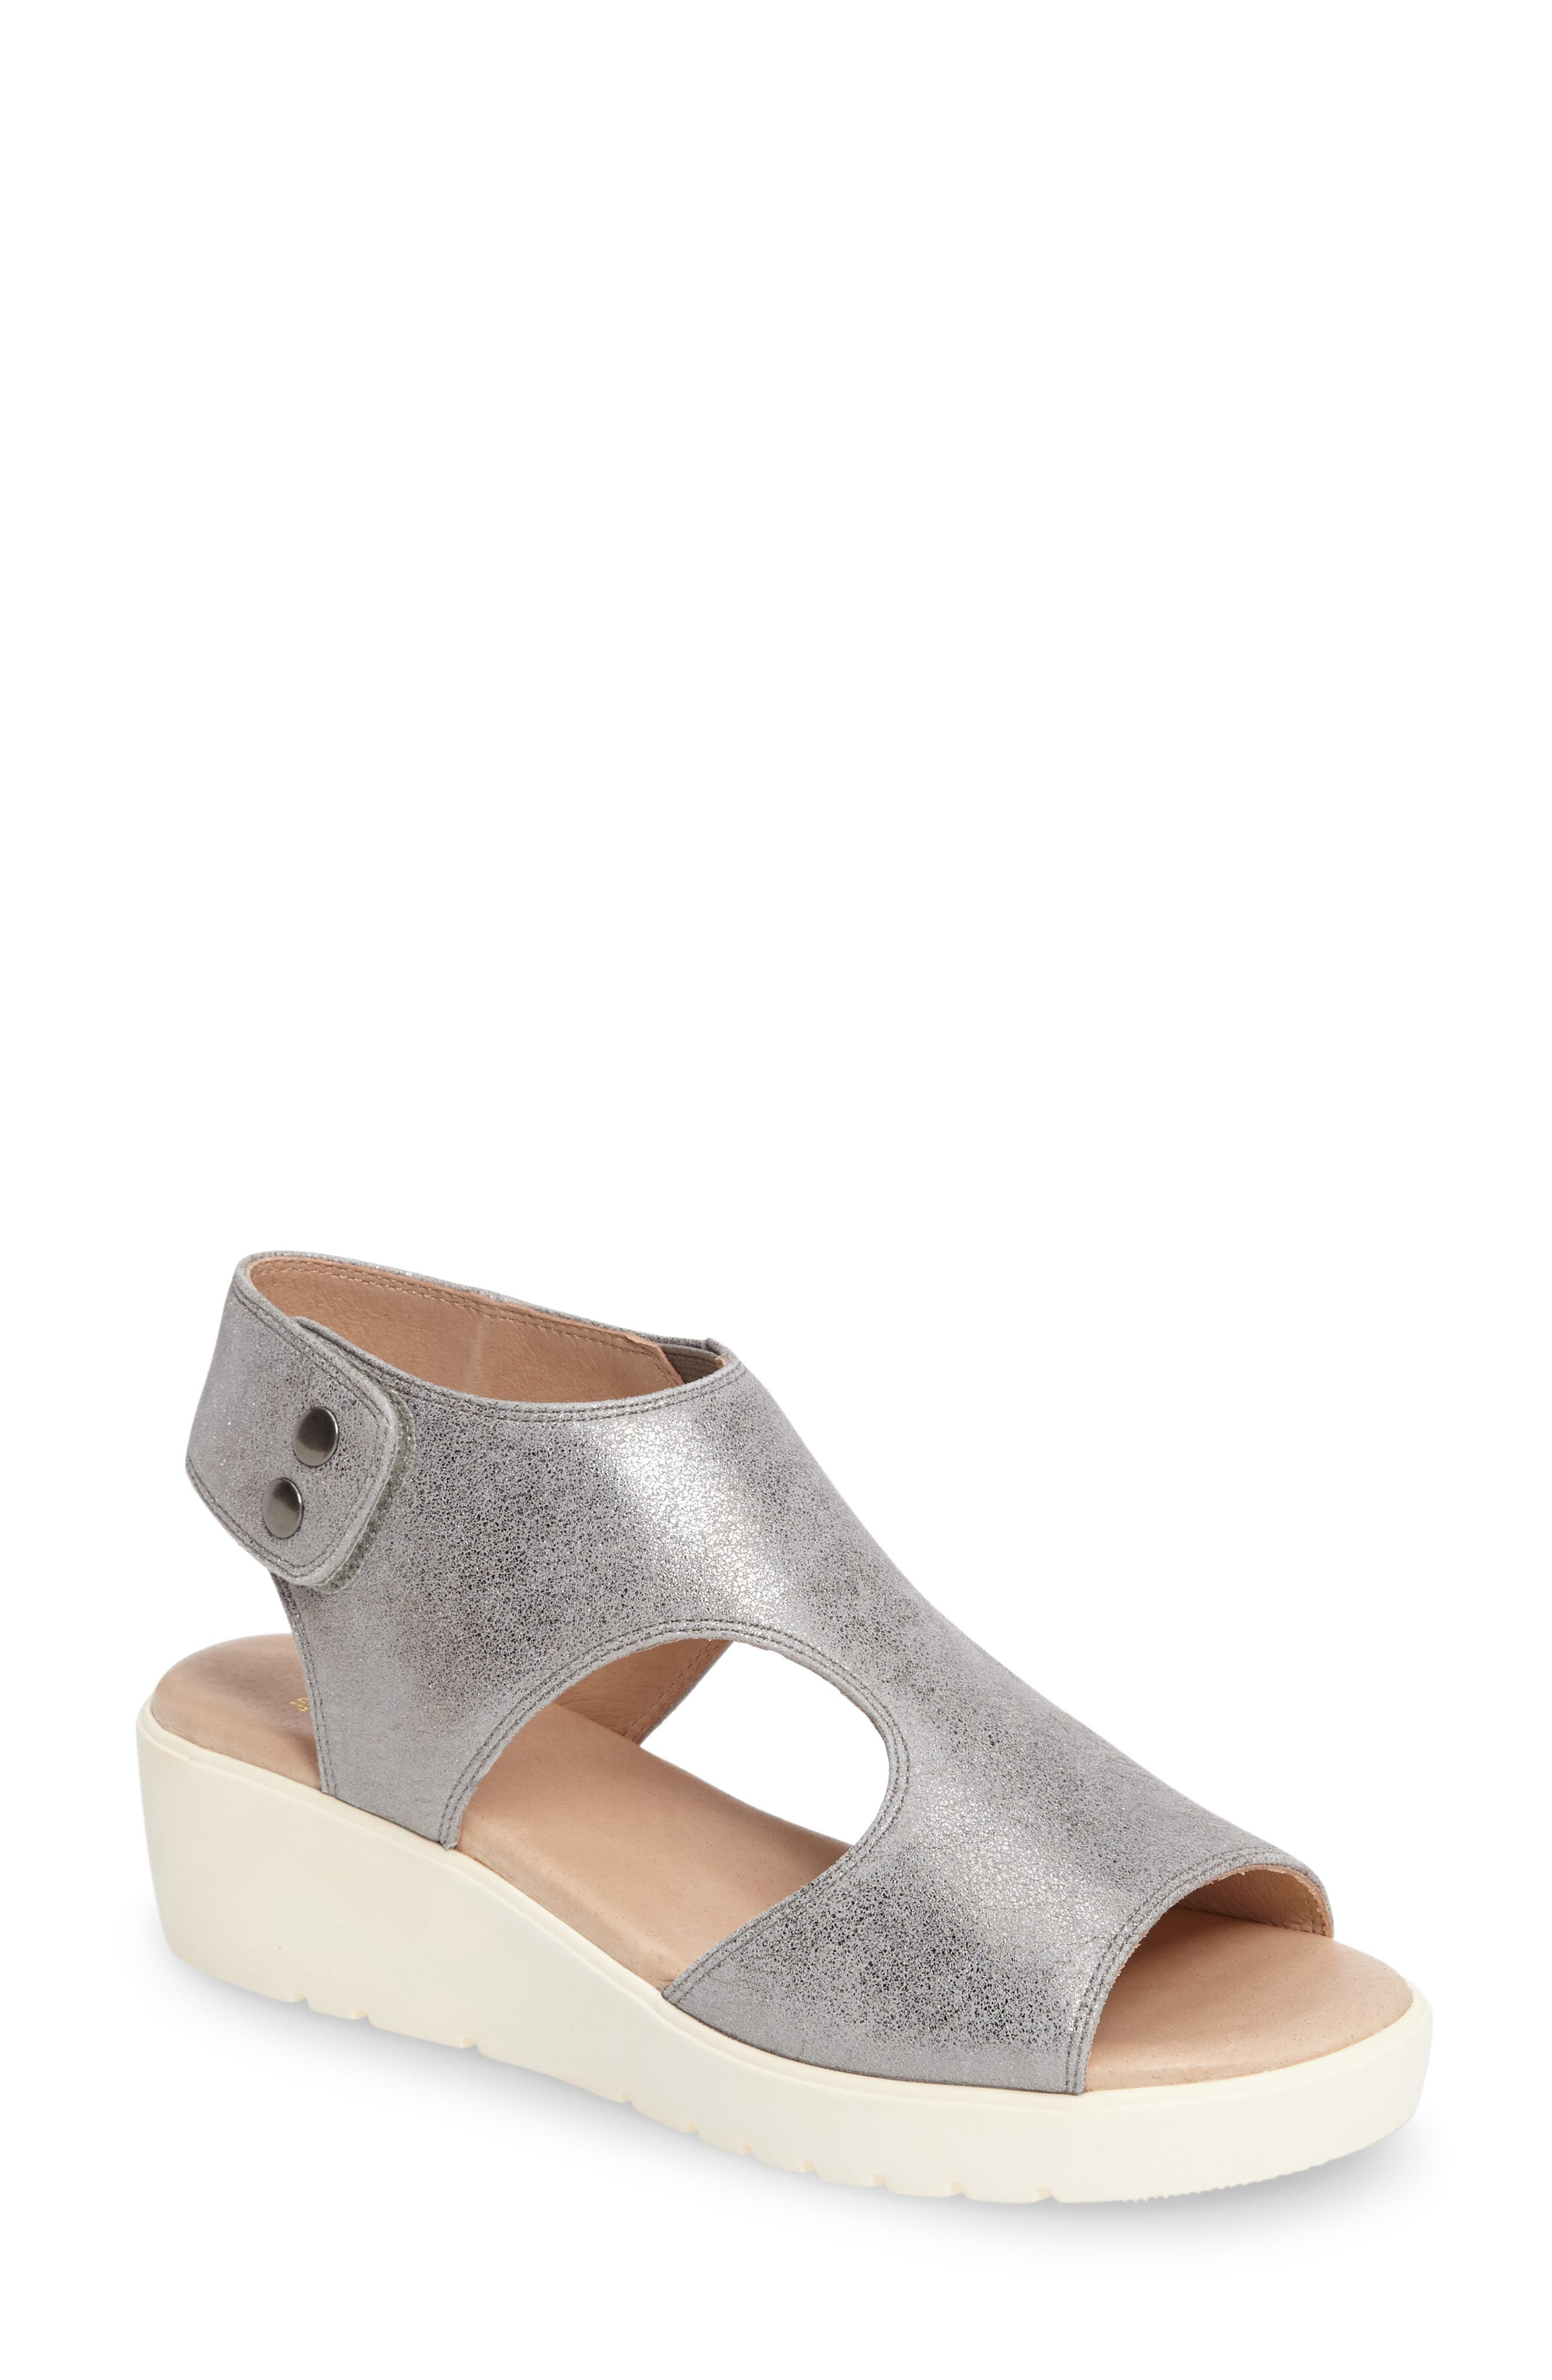 Camilla Slingback Wedge Sandal,                             Main thumbnail 1, color,                             SILVER METALLIC SUEDE